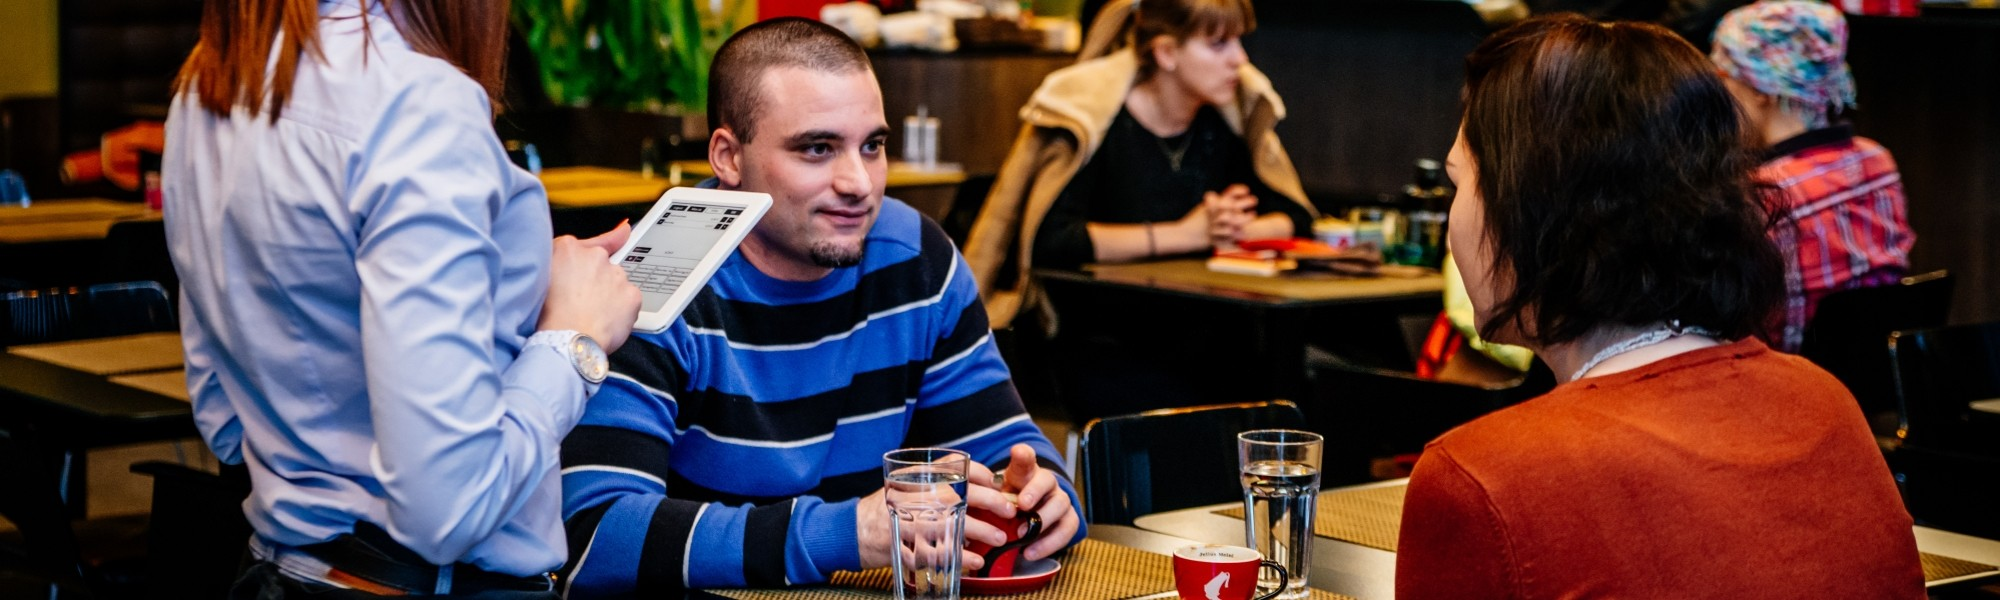 people ordering with tablet, online ordering system, ordering system for restaurants,bars,cafes